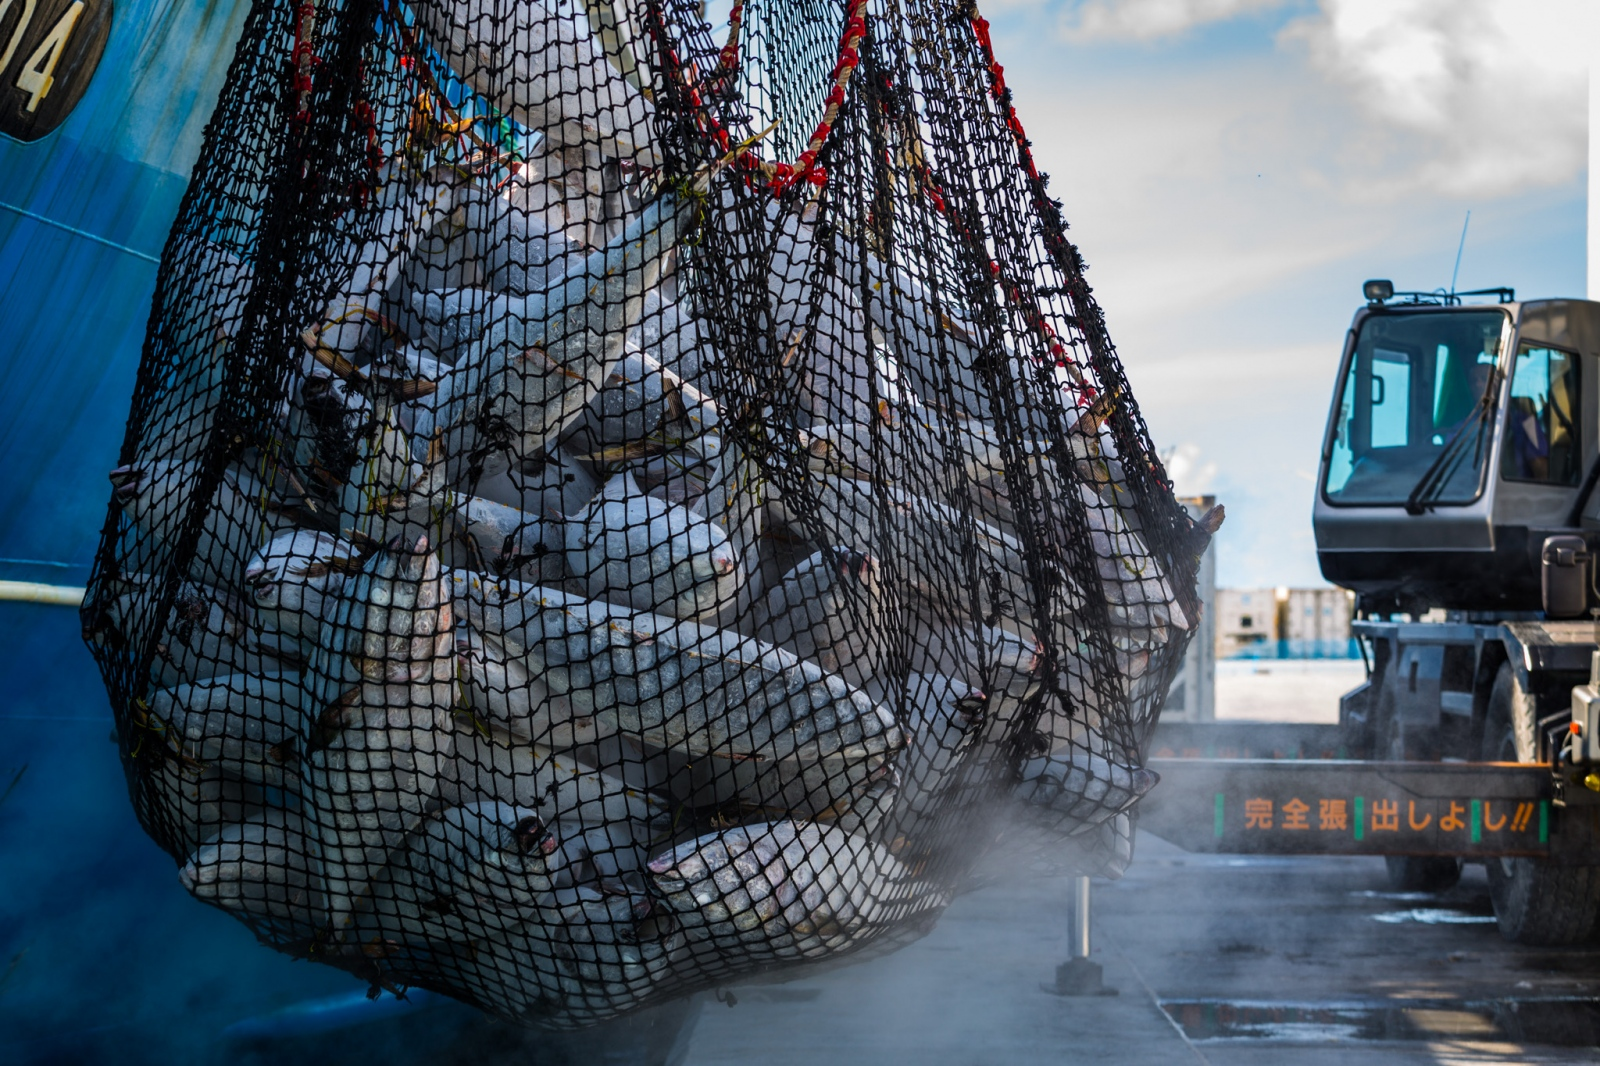 Art and Documentary Photography - Loading Fisheries016.jpg